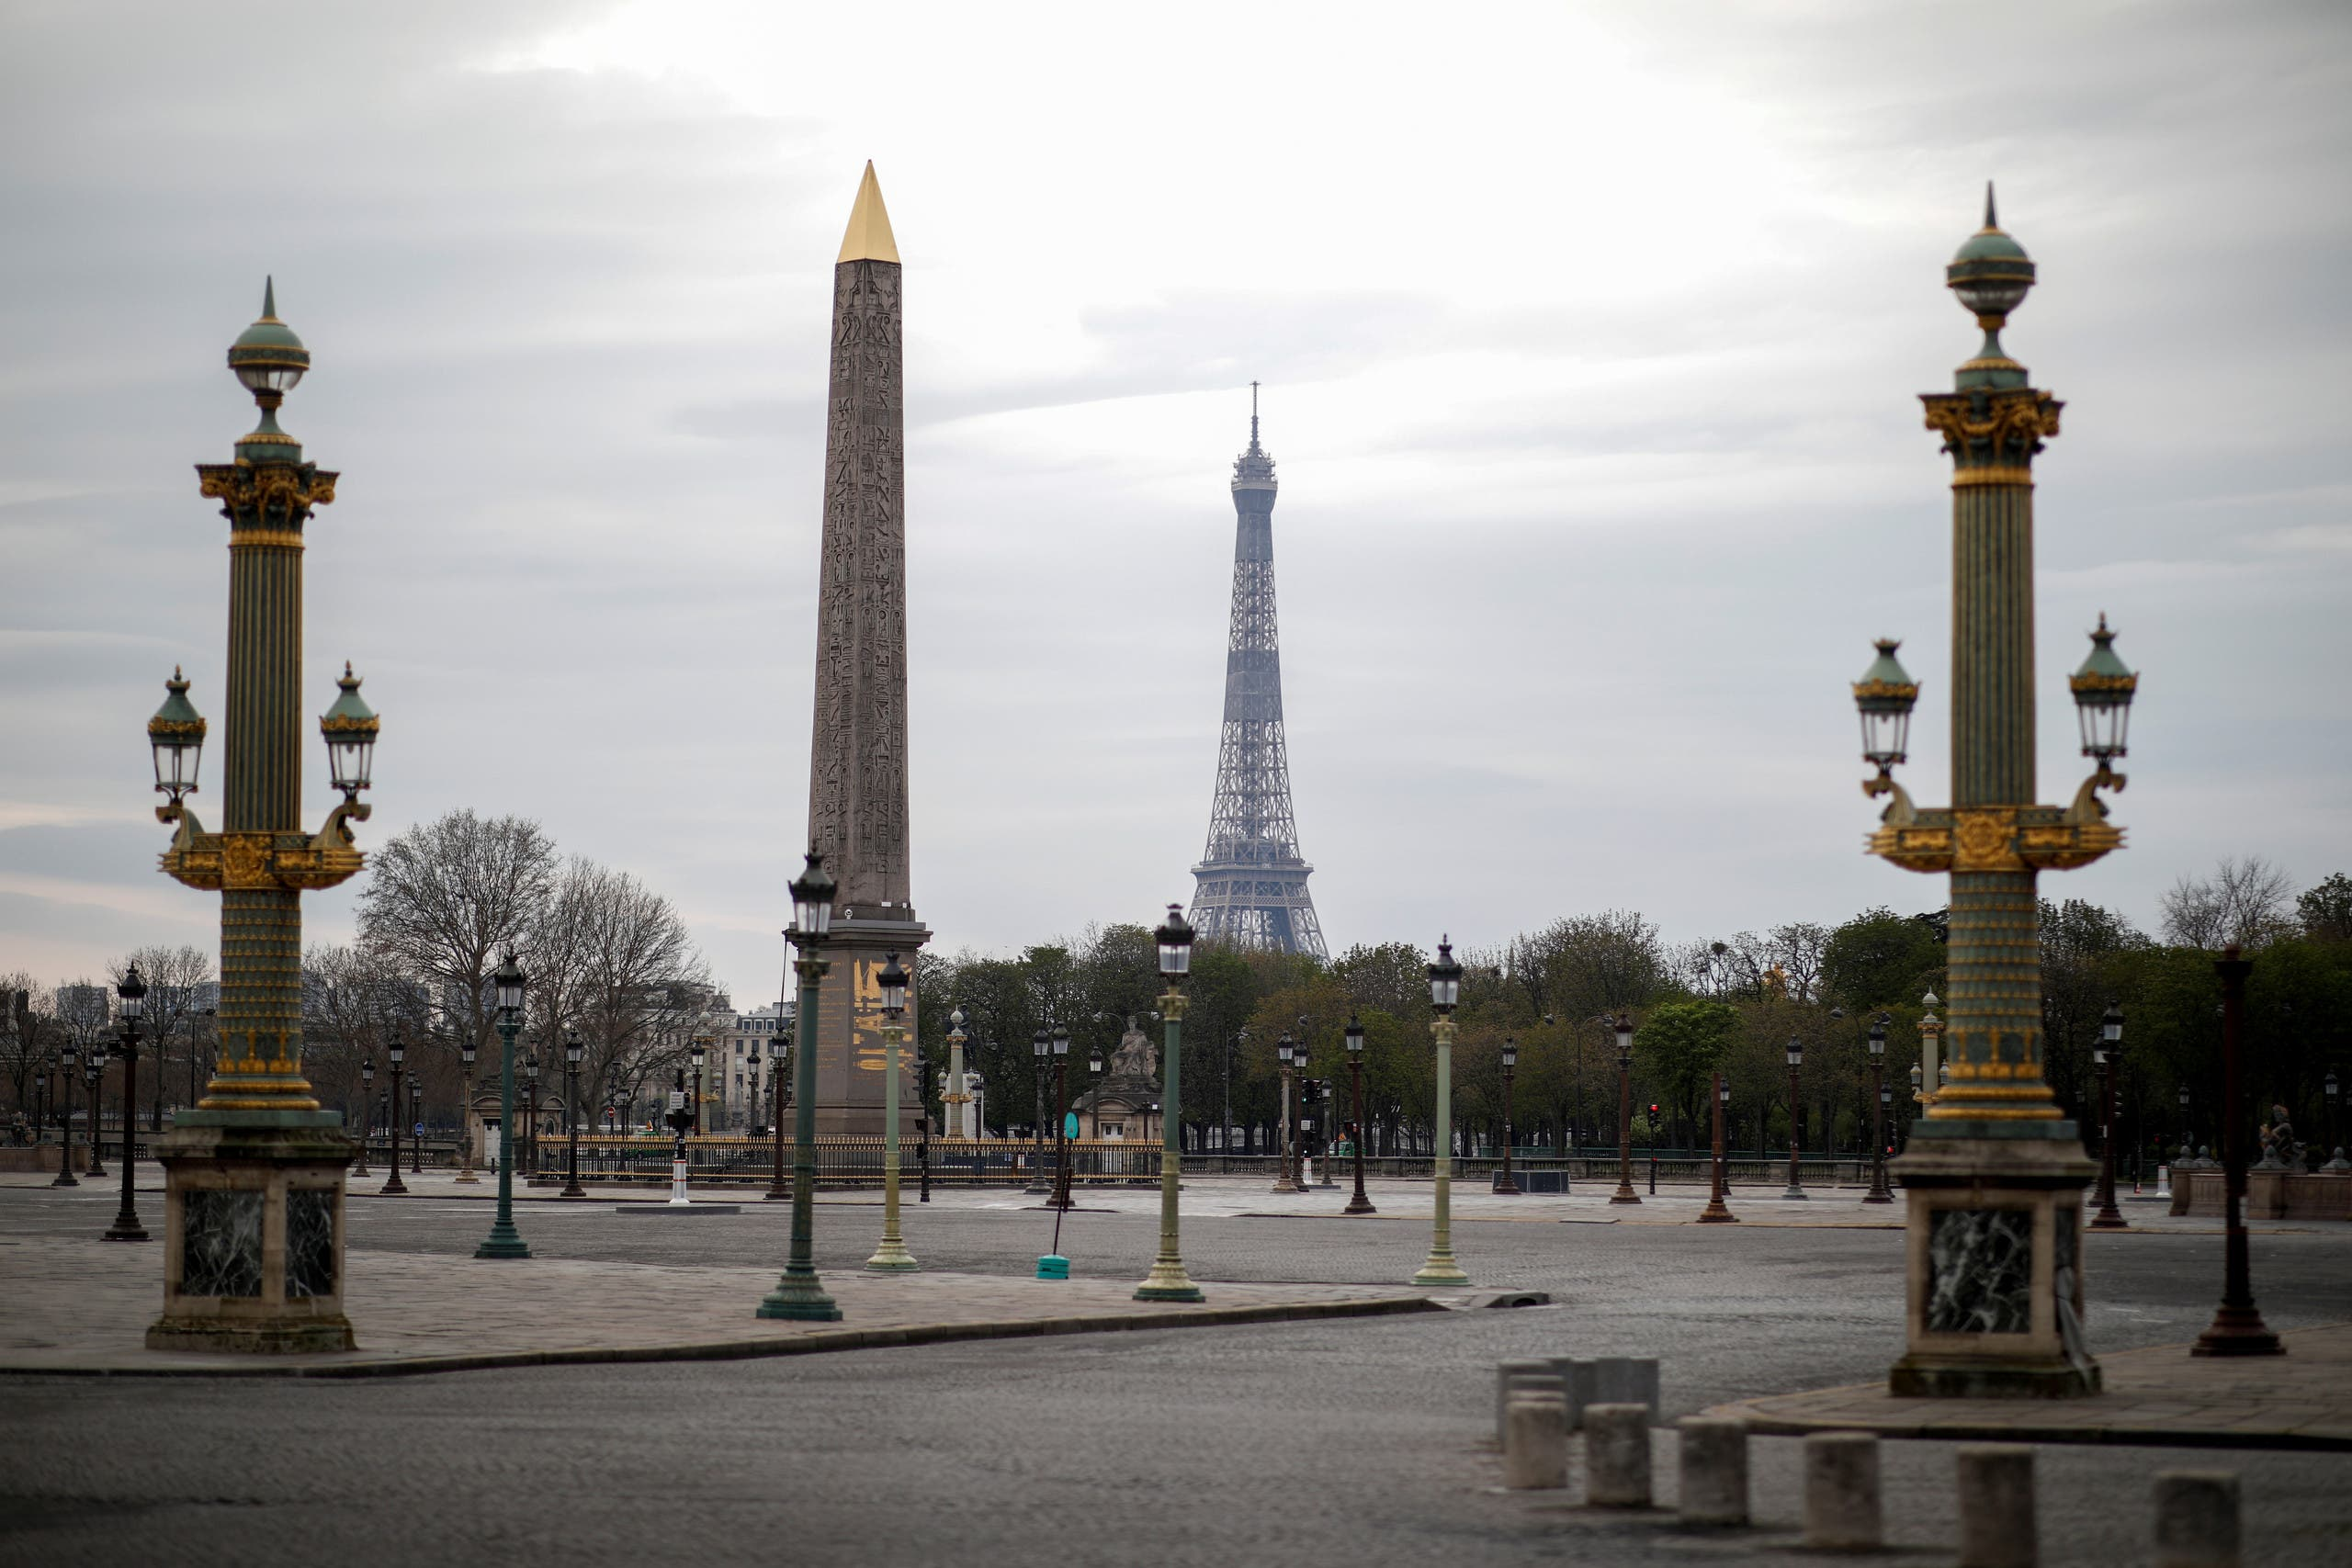 A view shows an empty Place de la Concord in Paris as a lockdown is imposed to slow the rate of the coronavirus disease in France, on March 22, 2020. (REUTERS)